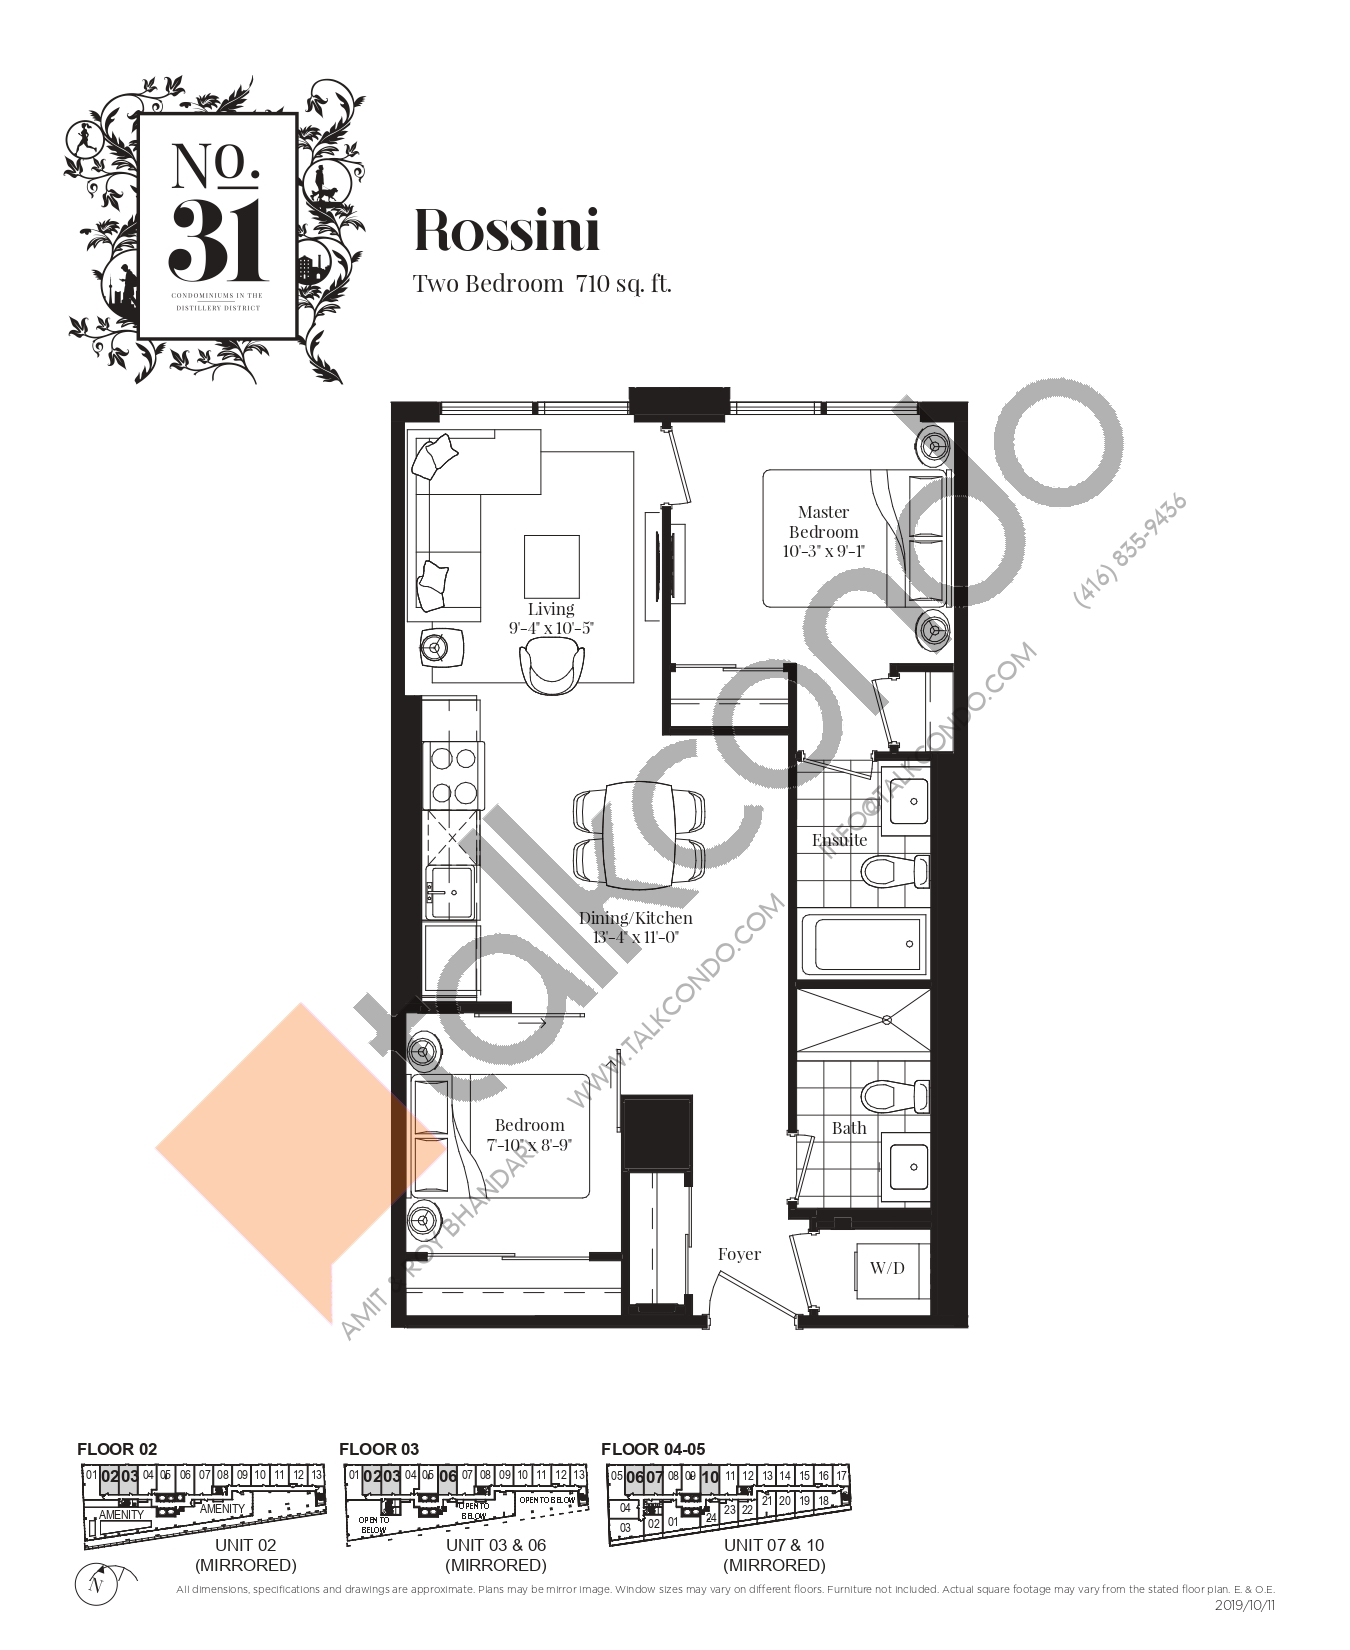 Rossini Floor Plan at No. 31 Condos - 710 sq.ft